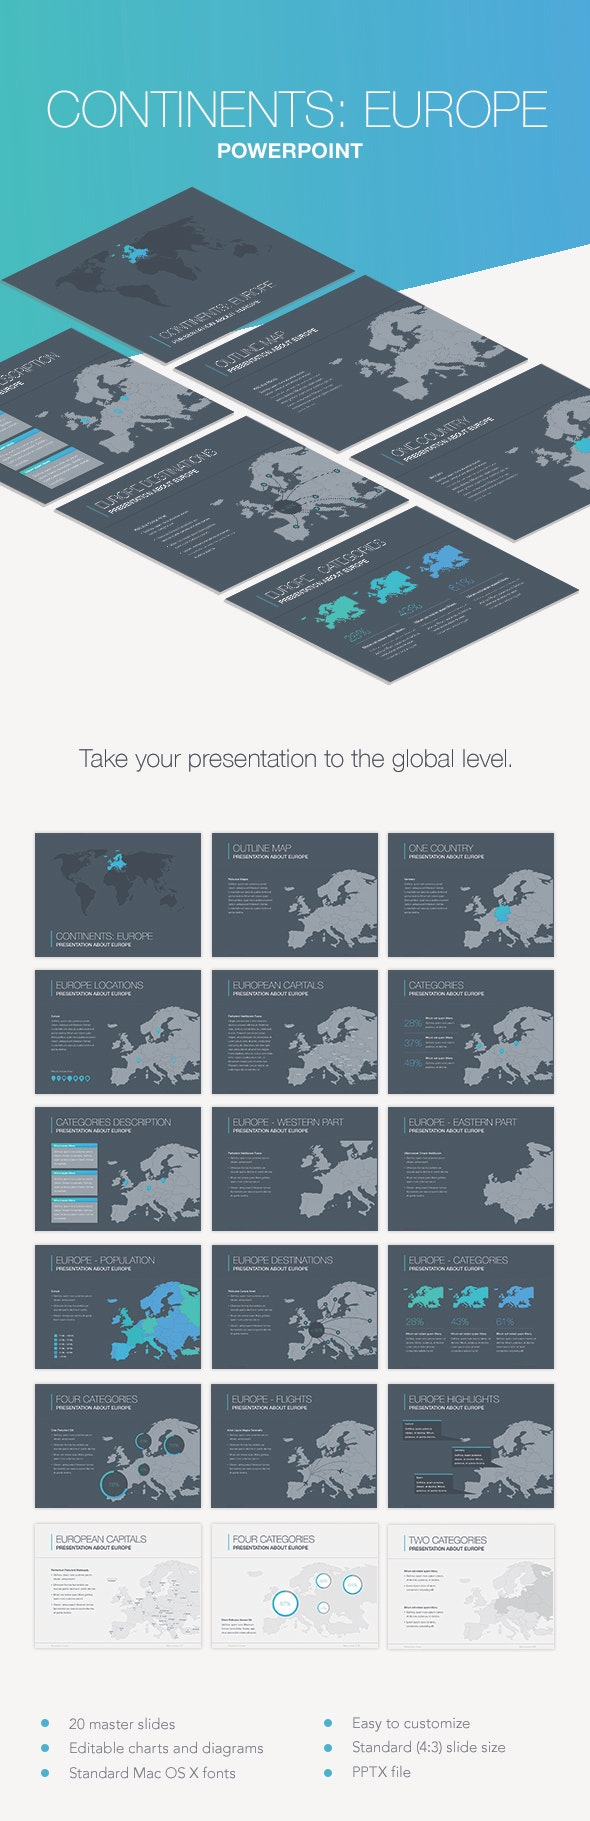 Continents: Europe PowerPoint Template - Keynote Templates Presentation Templates